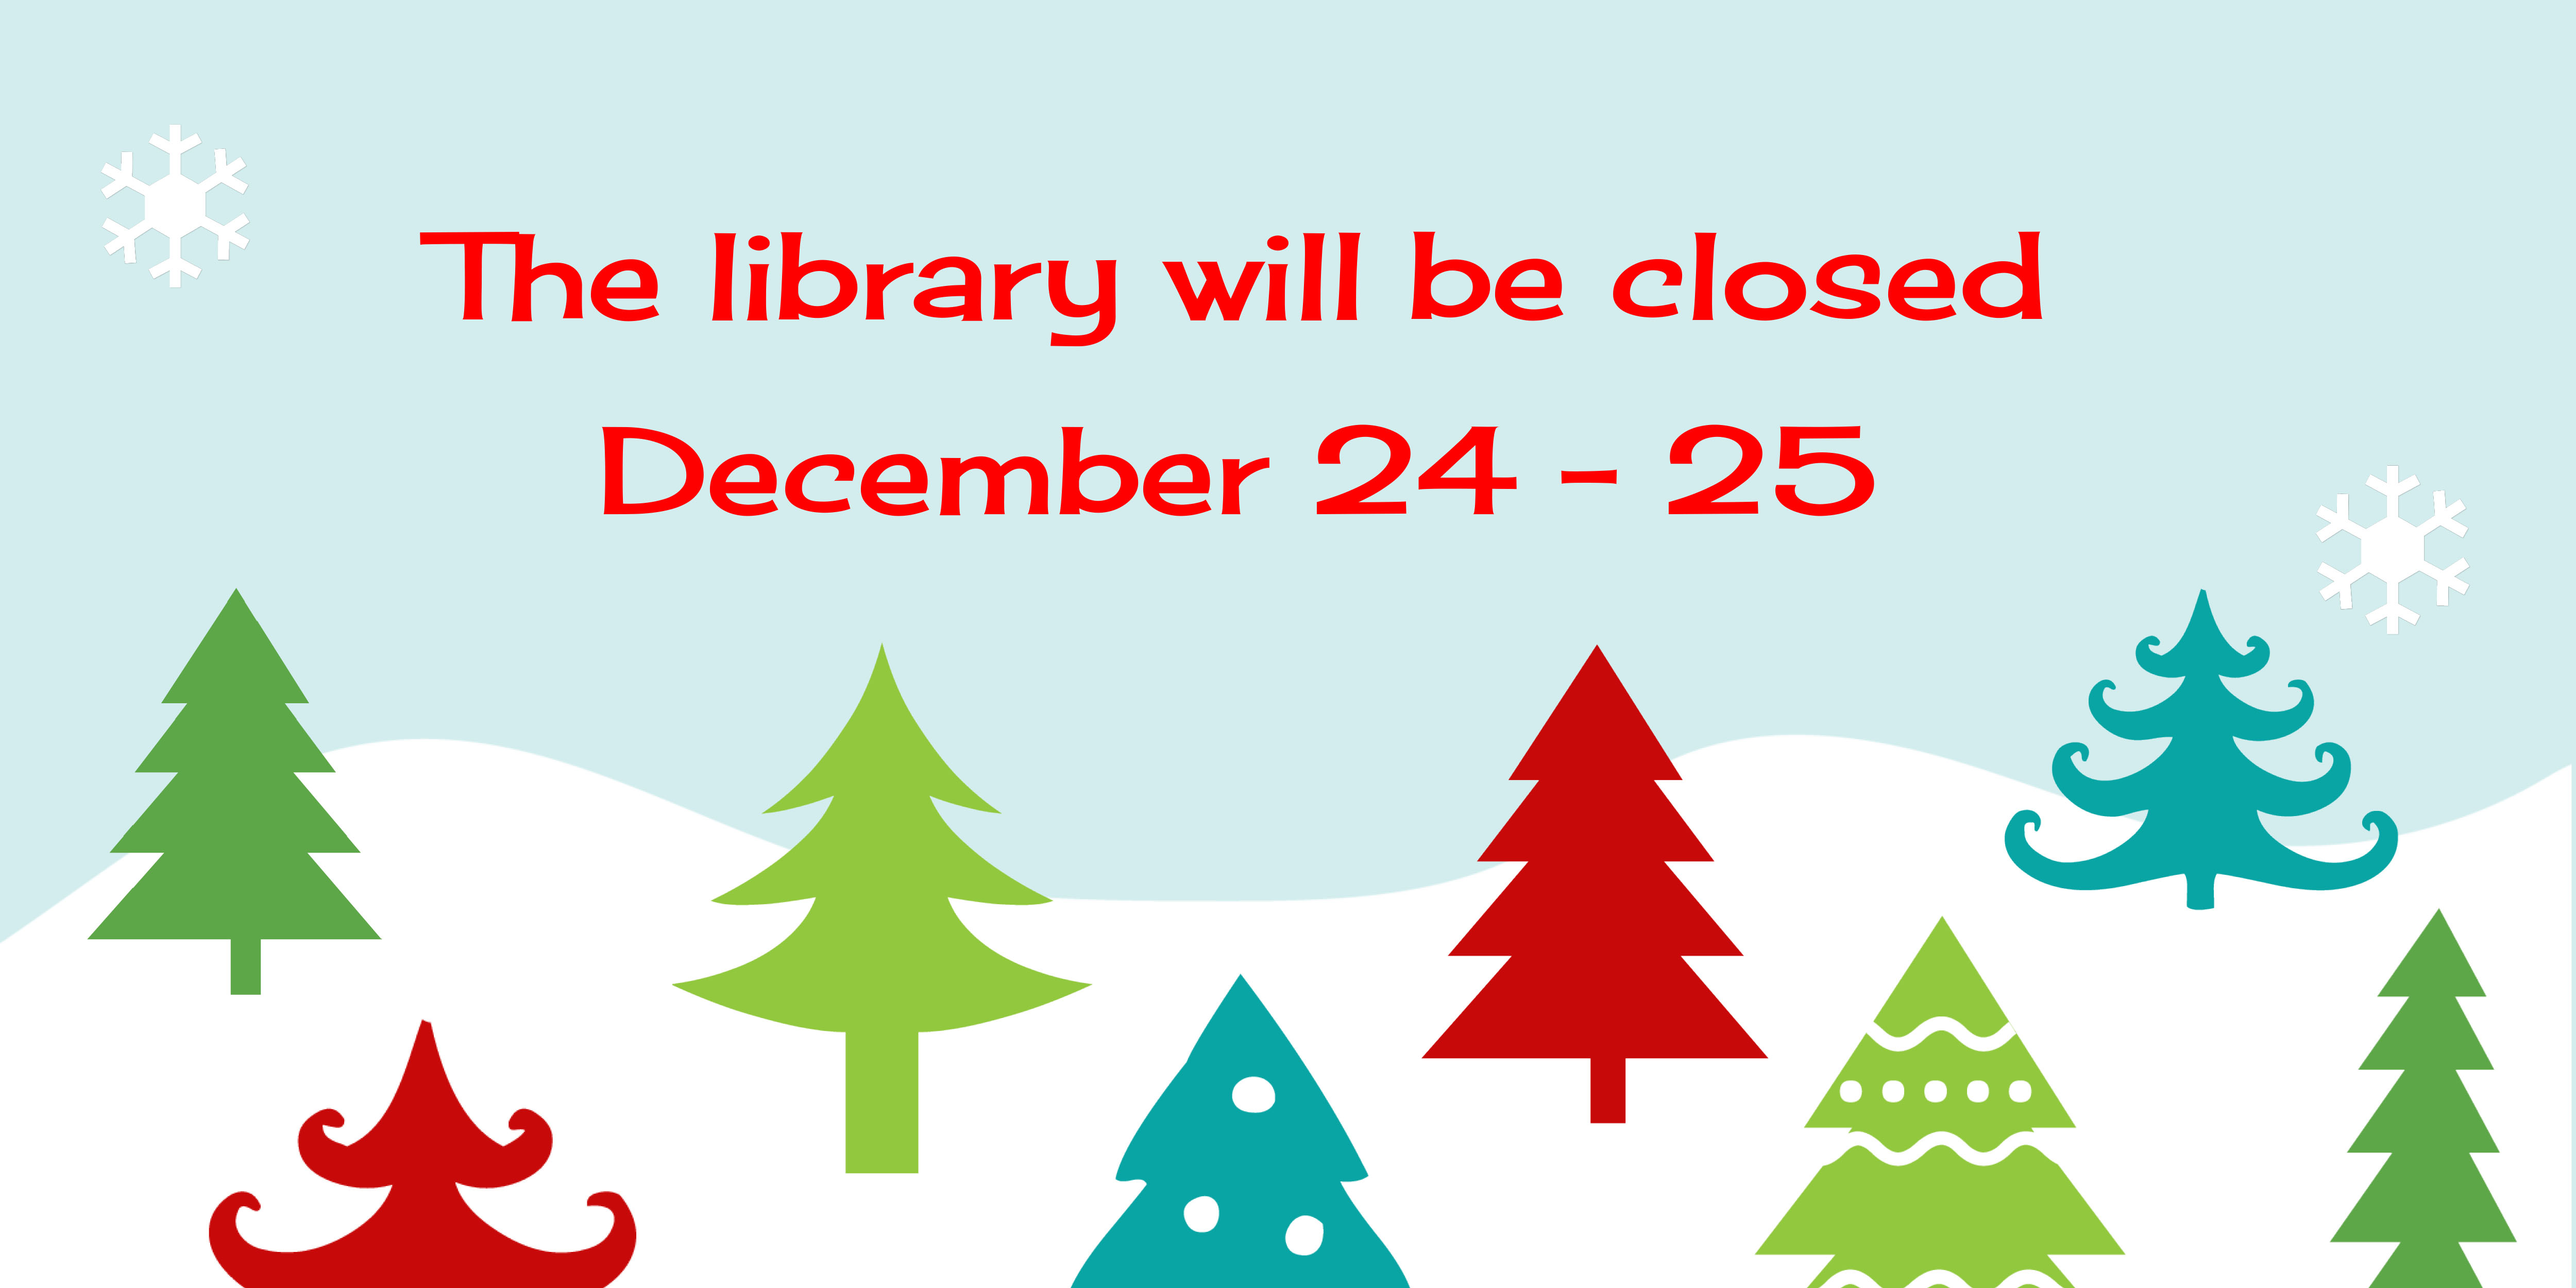 the library will be closed December 24 and 25